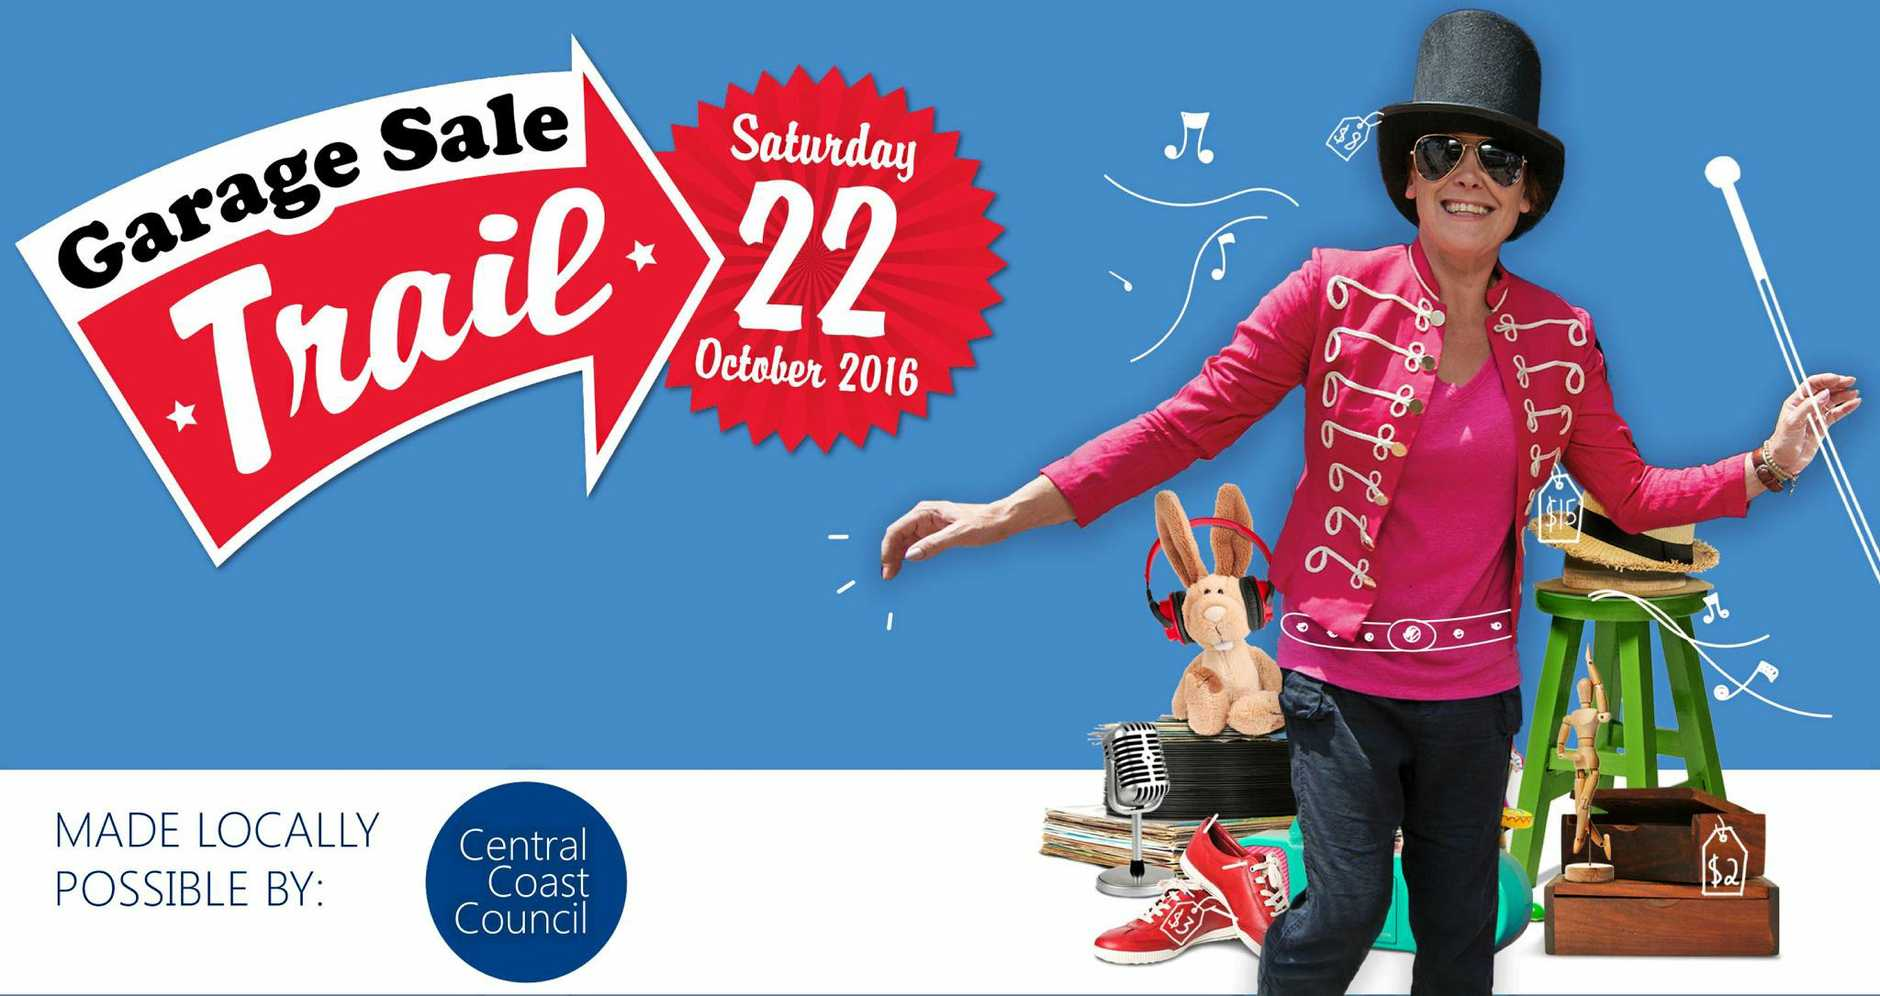 CLEAR OUT THE GARAGE: Australia's biggest garage sale comes to the Central Coast in October.